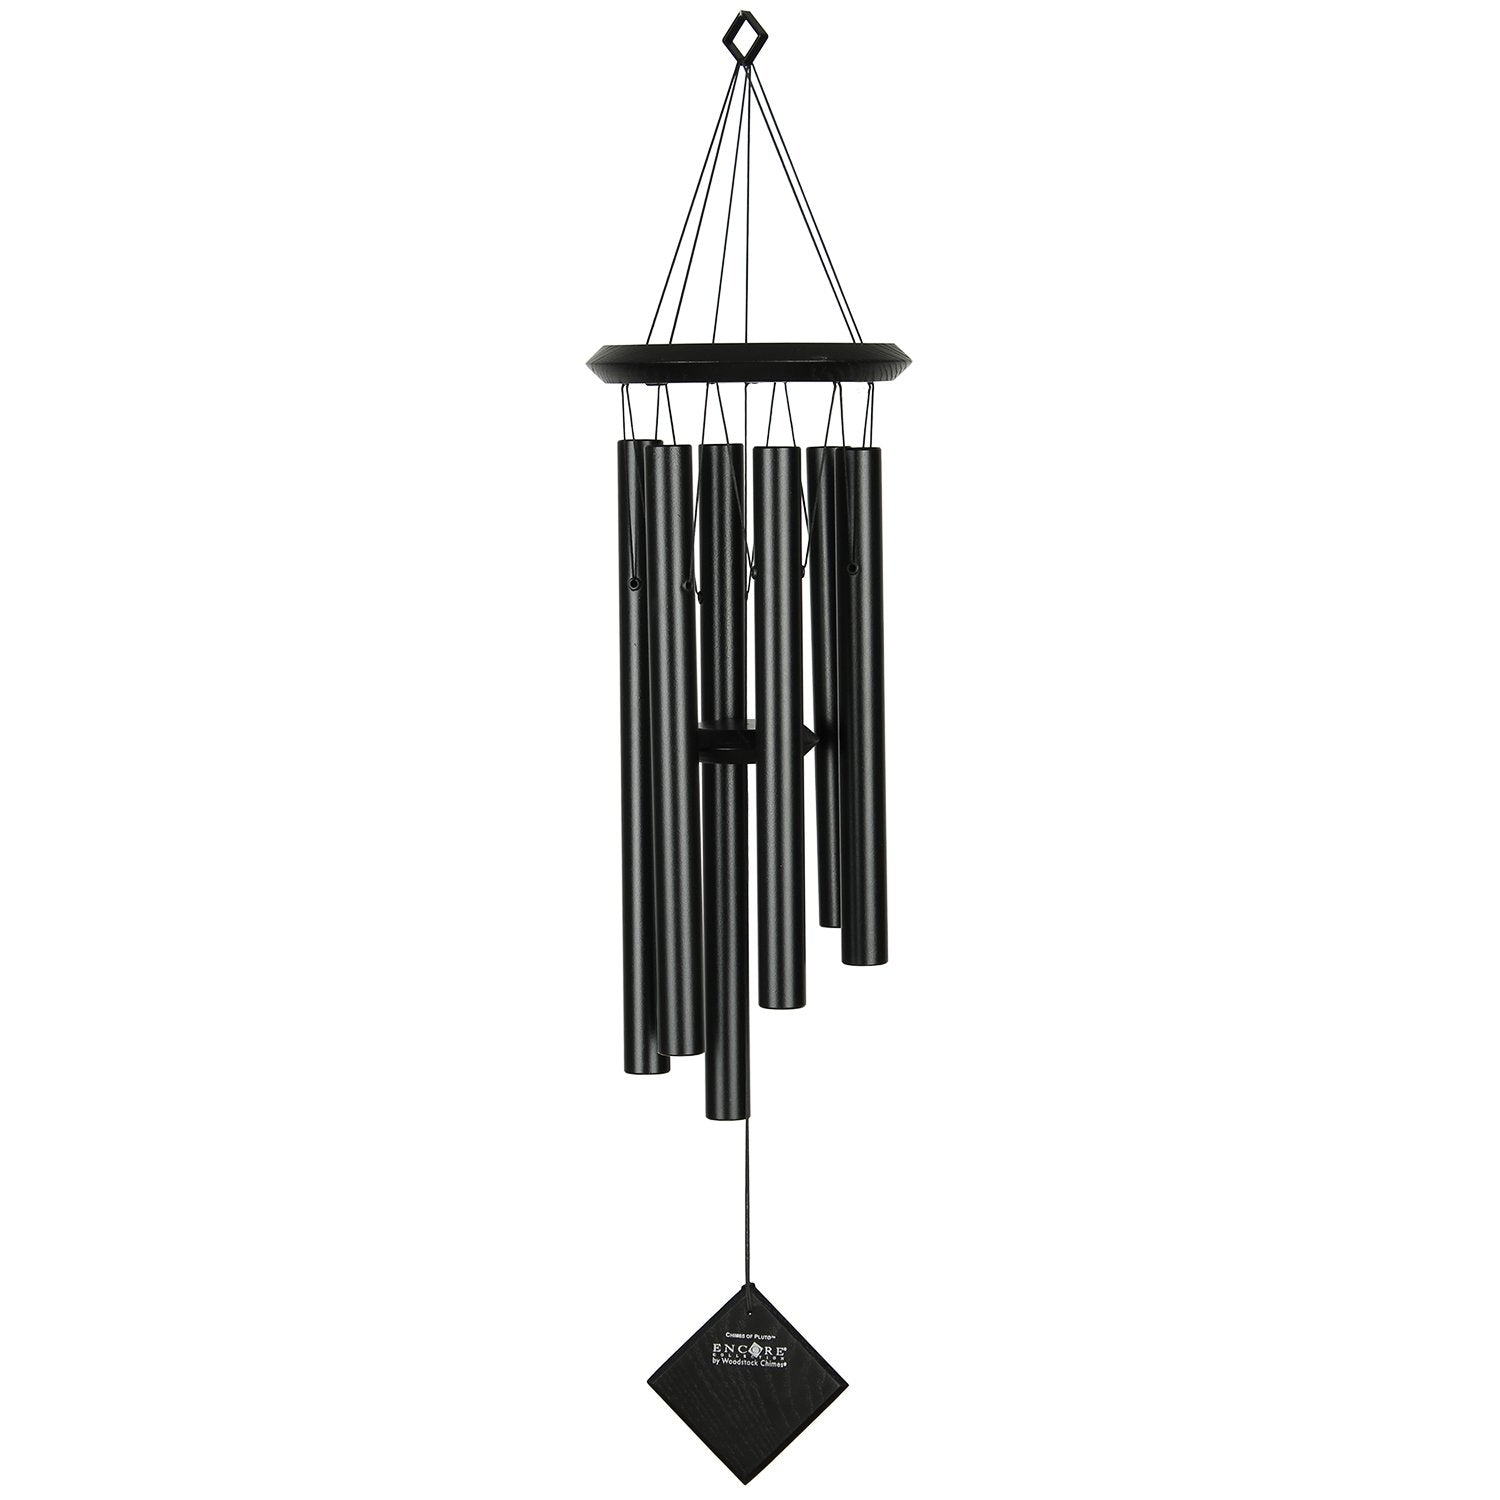 Chimes of Pluto - Black/Black full product image